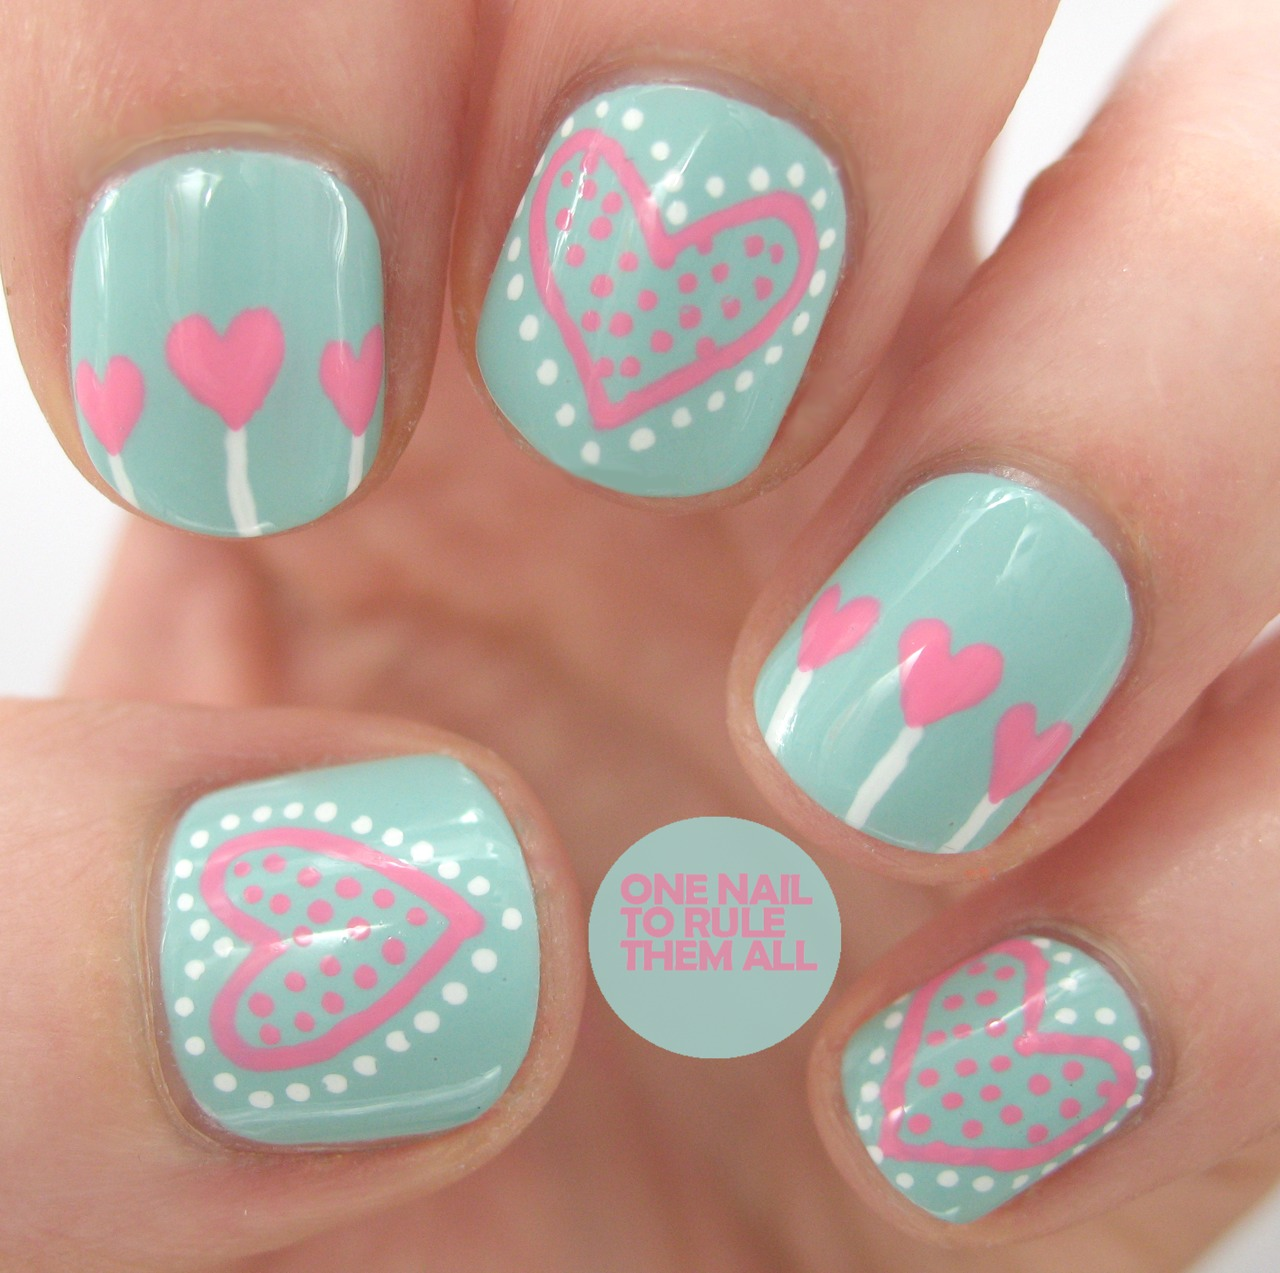 Adorable Nail Art: Unghie Romantiche